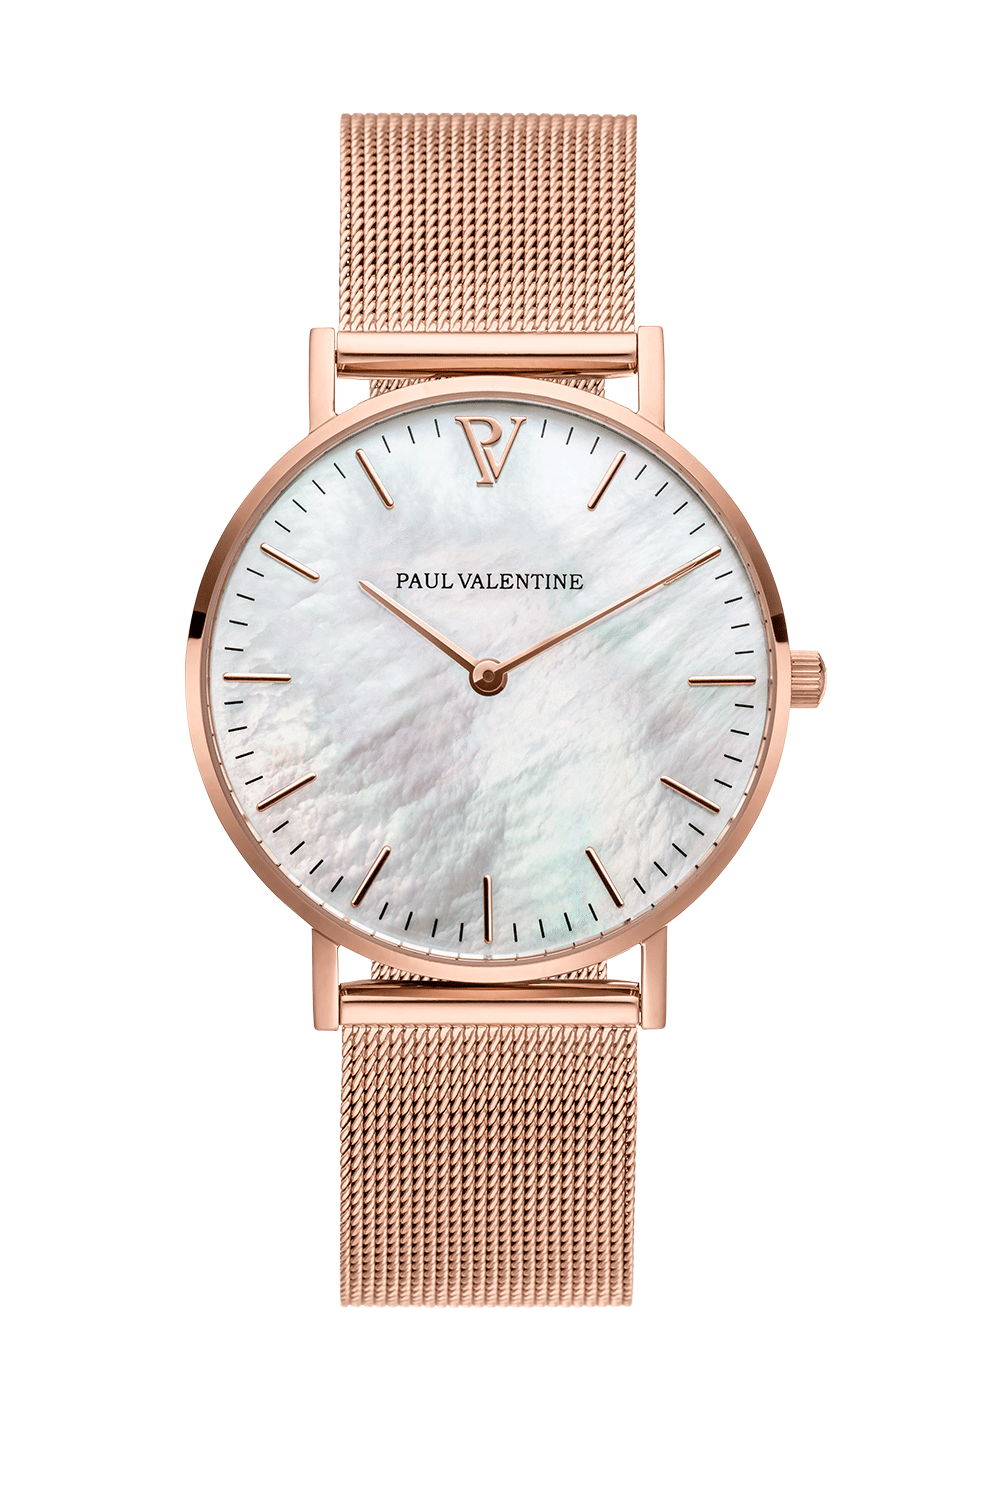 paul valentine women's watches